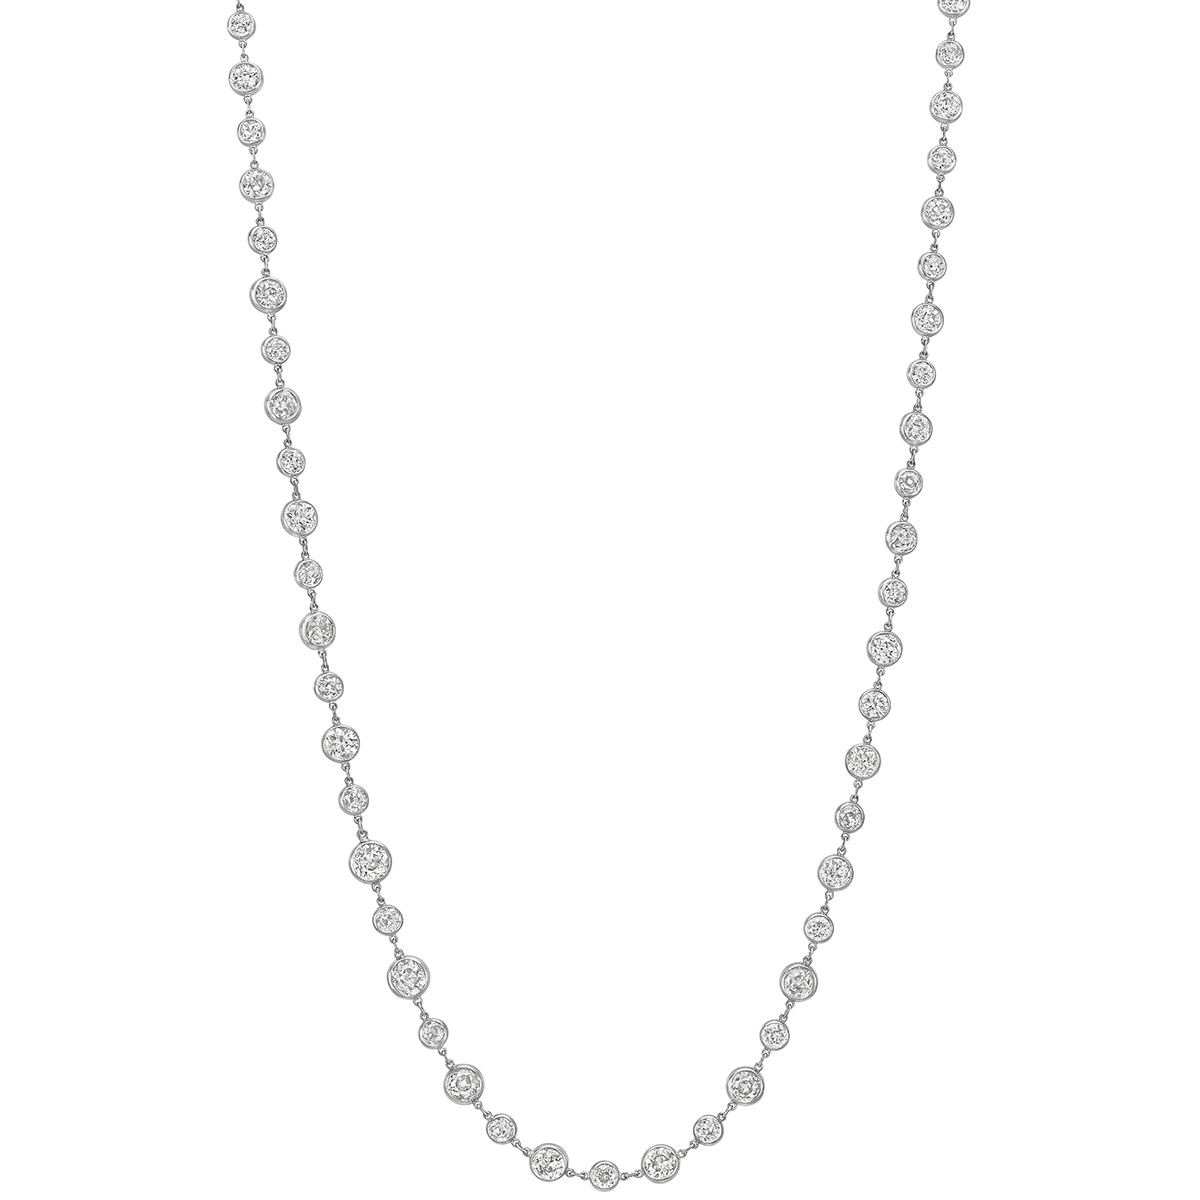 Larger & Smaller Diamond Chain Necklace (~37.20 ct tw)